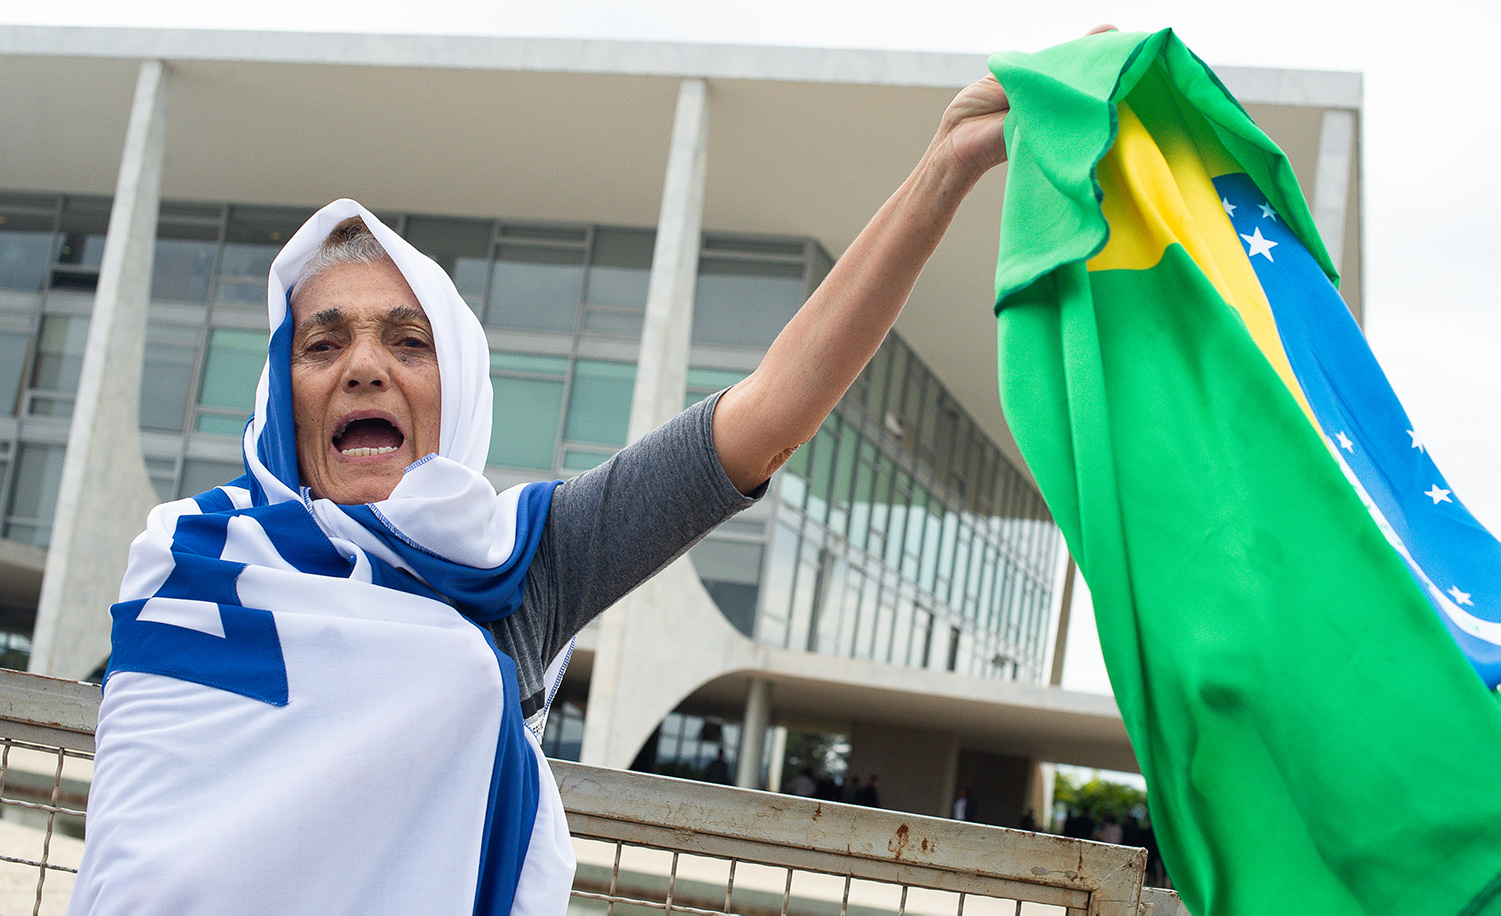 A Brazilian woman wrapped in Israel's flag while holding the Brazilian flag in her hand on May 7, 2020 in Brasilia. Andressa Anholete/Getty Images.